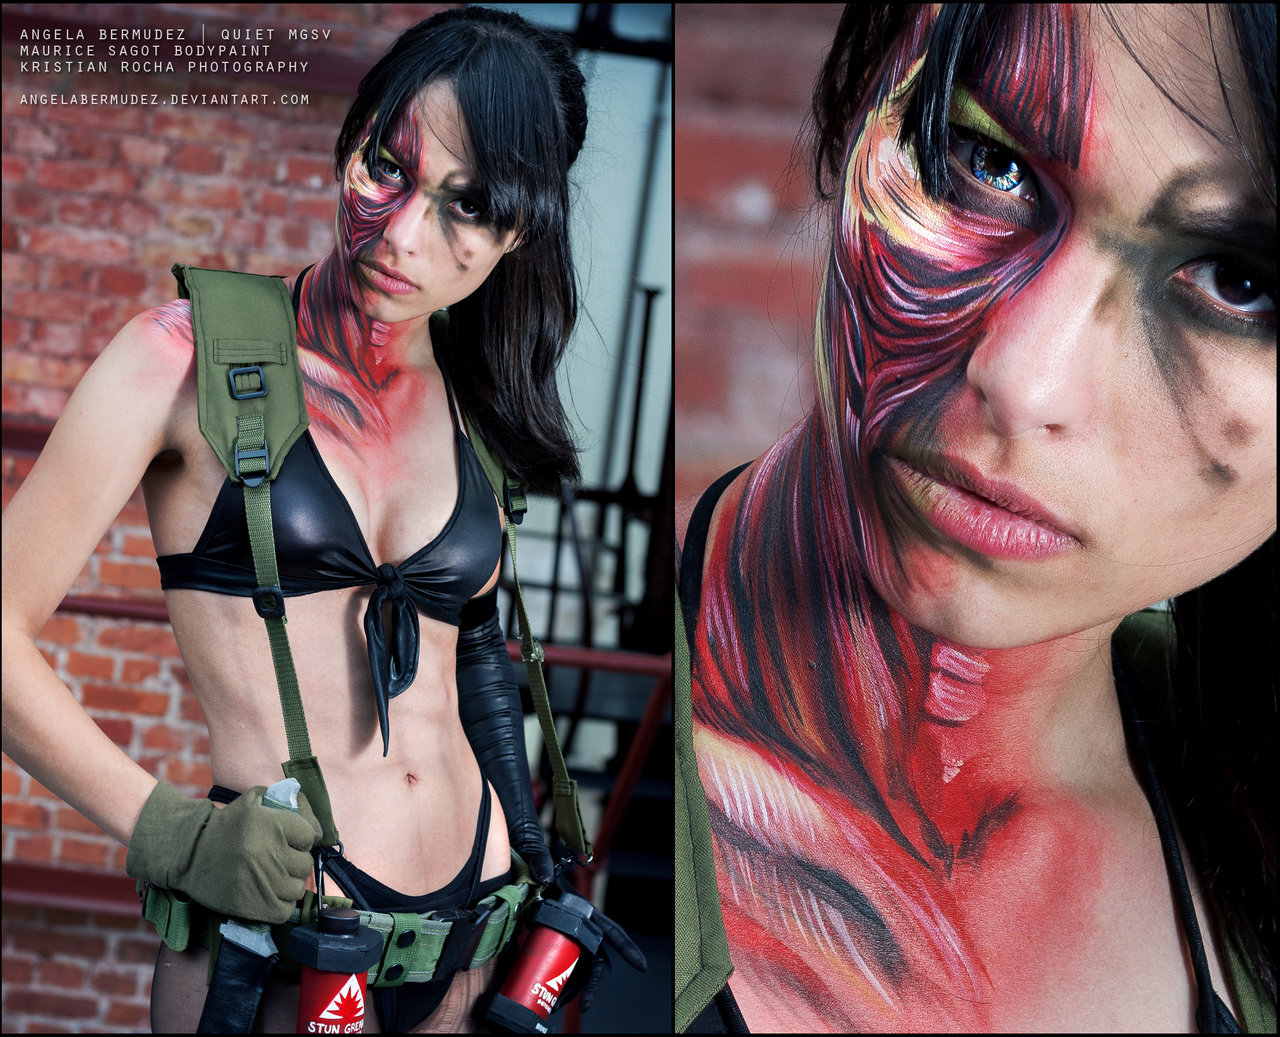 Quiet Cosplay Metal Gear Solid 5 Closeup Starring Angela Bermudez by Kristian Rocha Photography